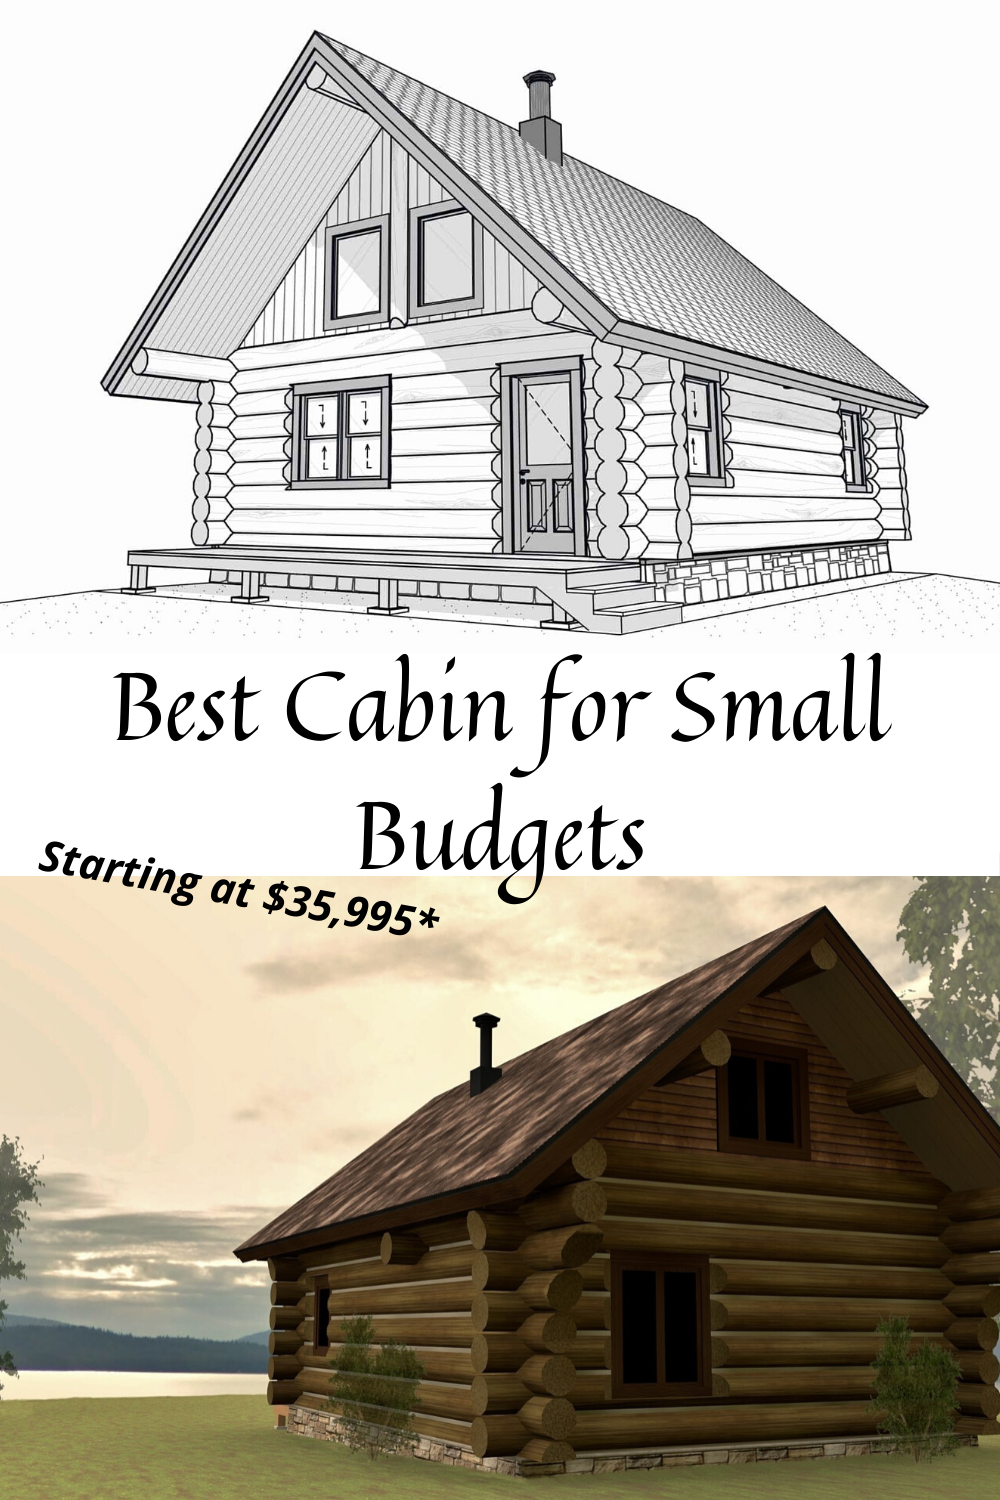 Best Log Cabin Floor Plan For Small Budgets Cabin Floor Plans Log Cabin Floor Plans Log Home Floor Plans